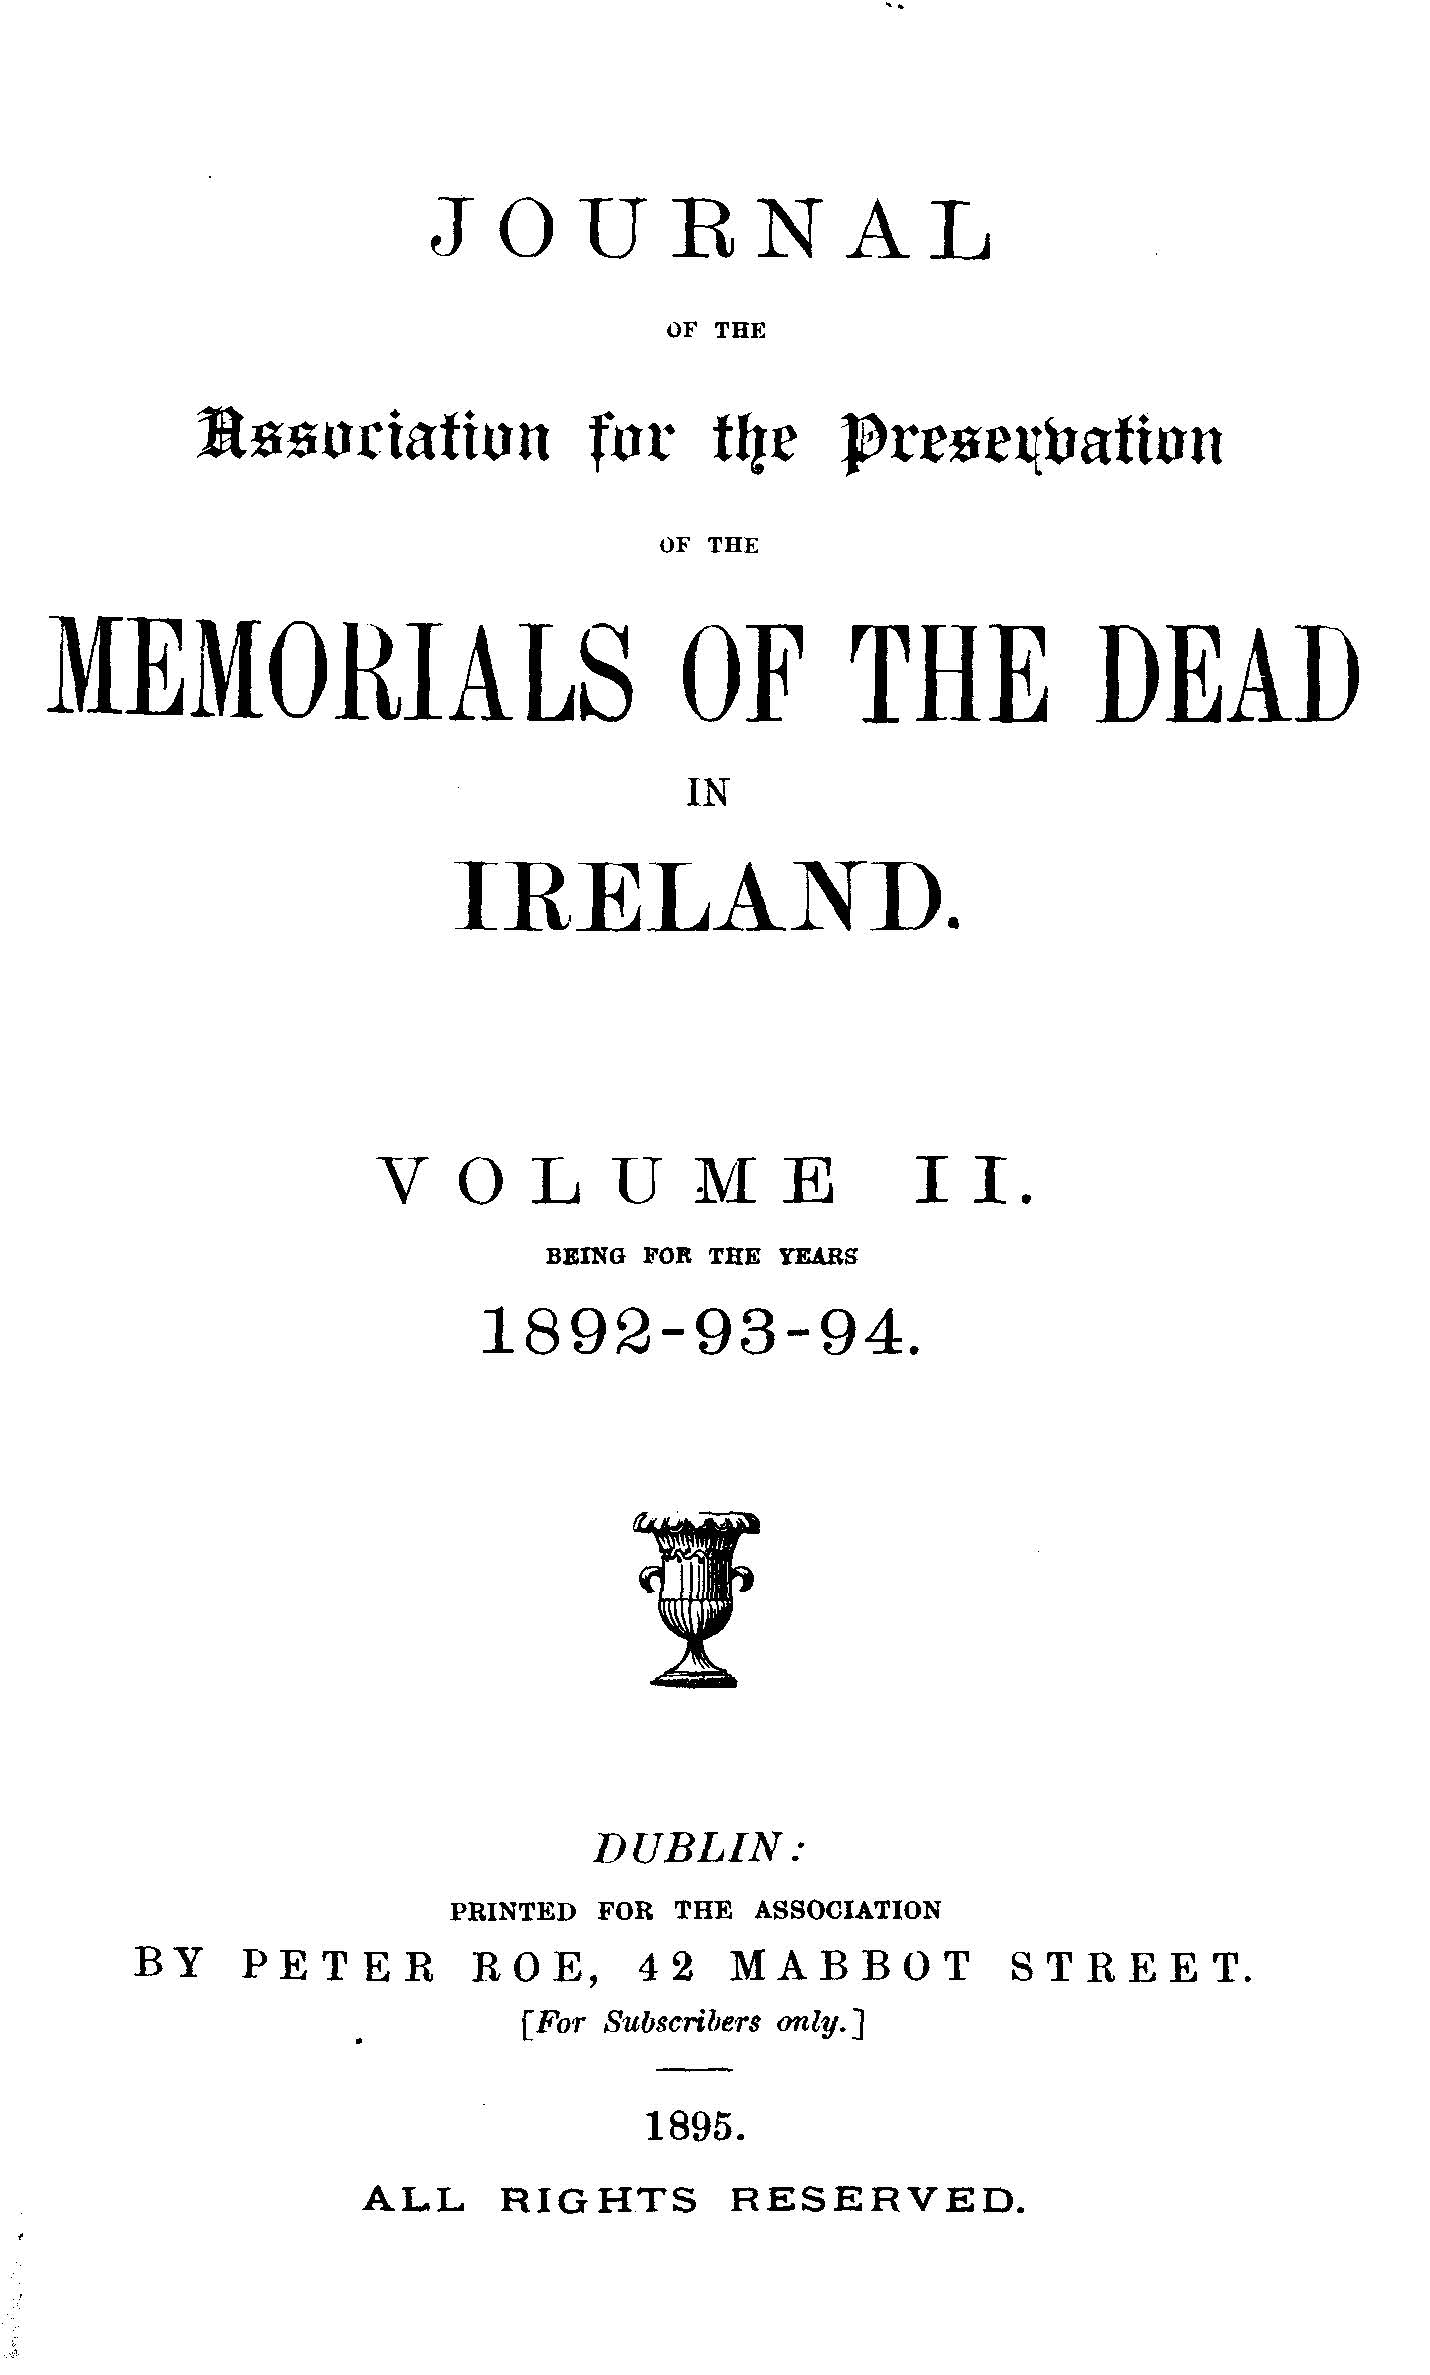 photo of Journal of the Association for the Preservation of the Memorials of the Dead. Volume II, for the years 1892-1894. 1895